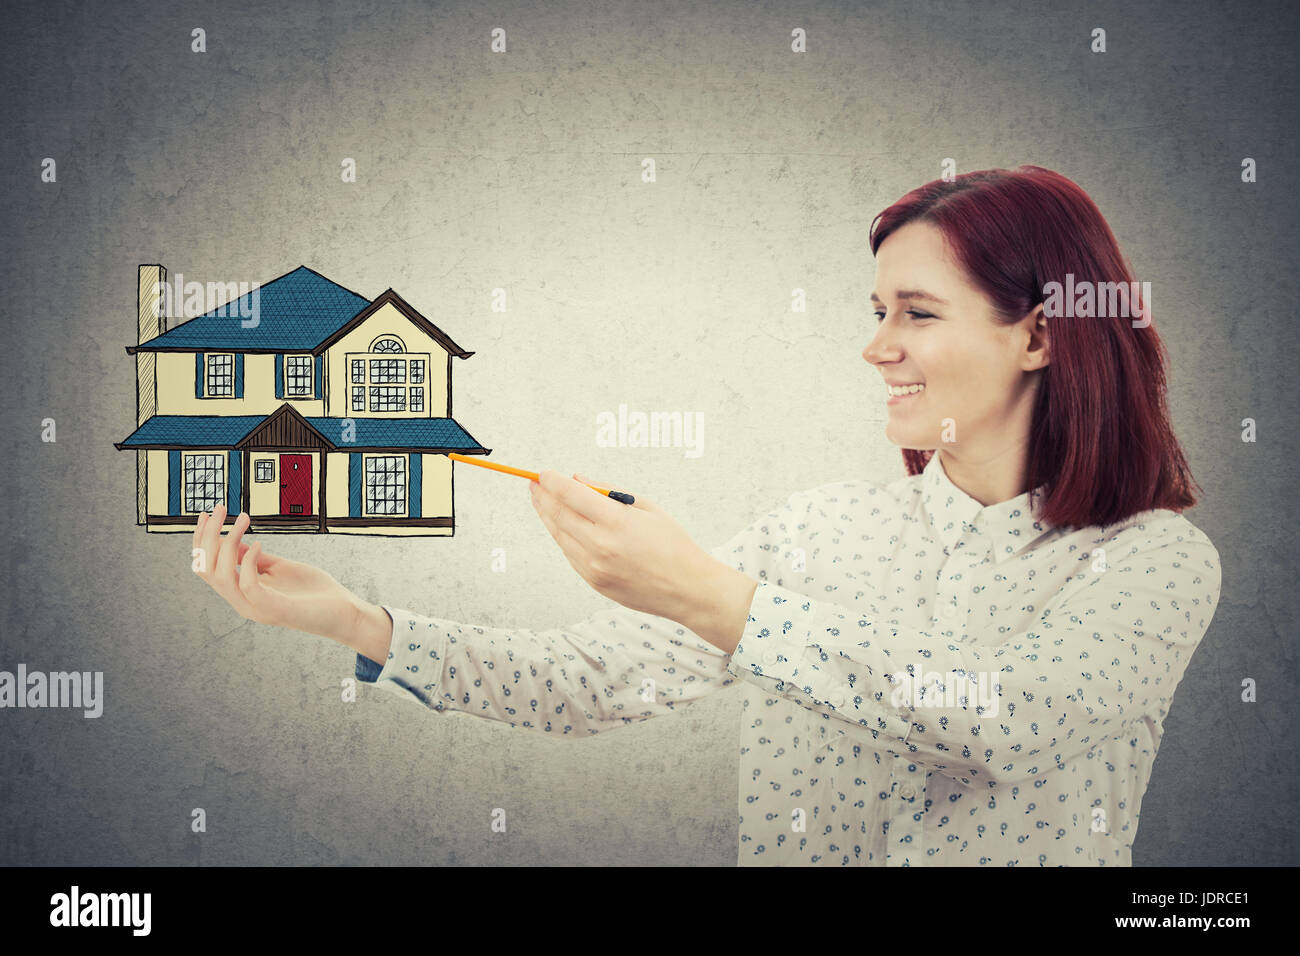 Young smiling girl drawing a family house in her hand. Home protection and proprety insurance concept isolated on - Stock Image